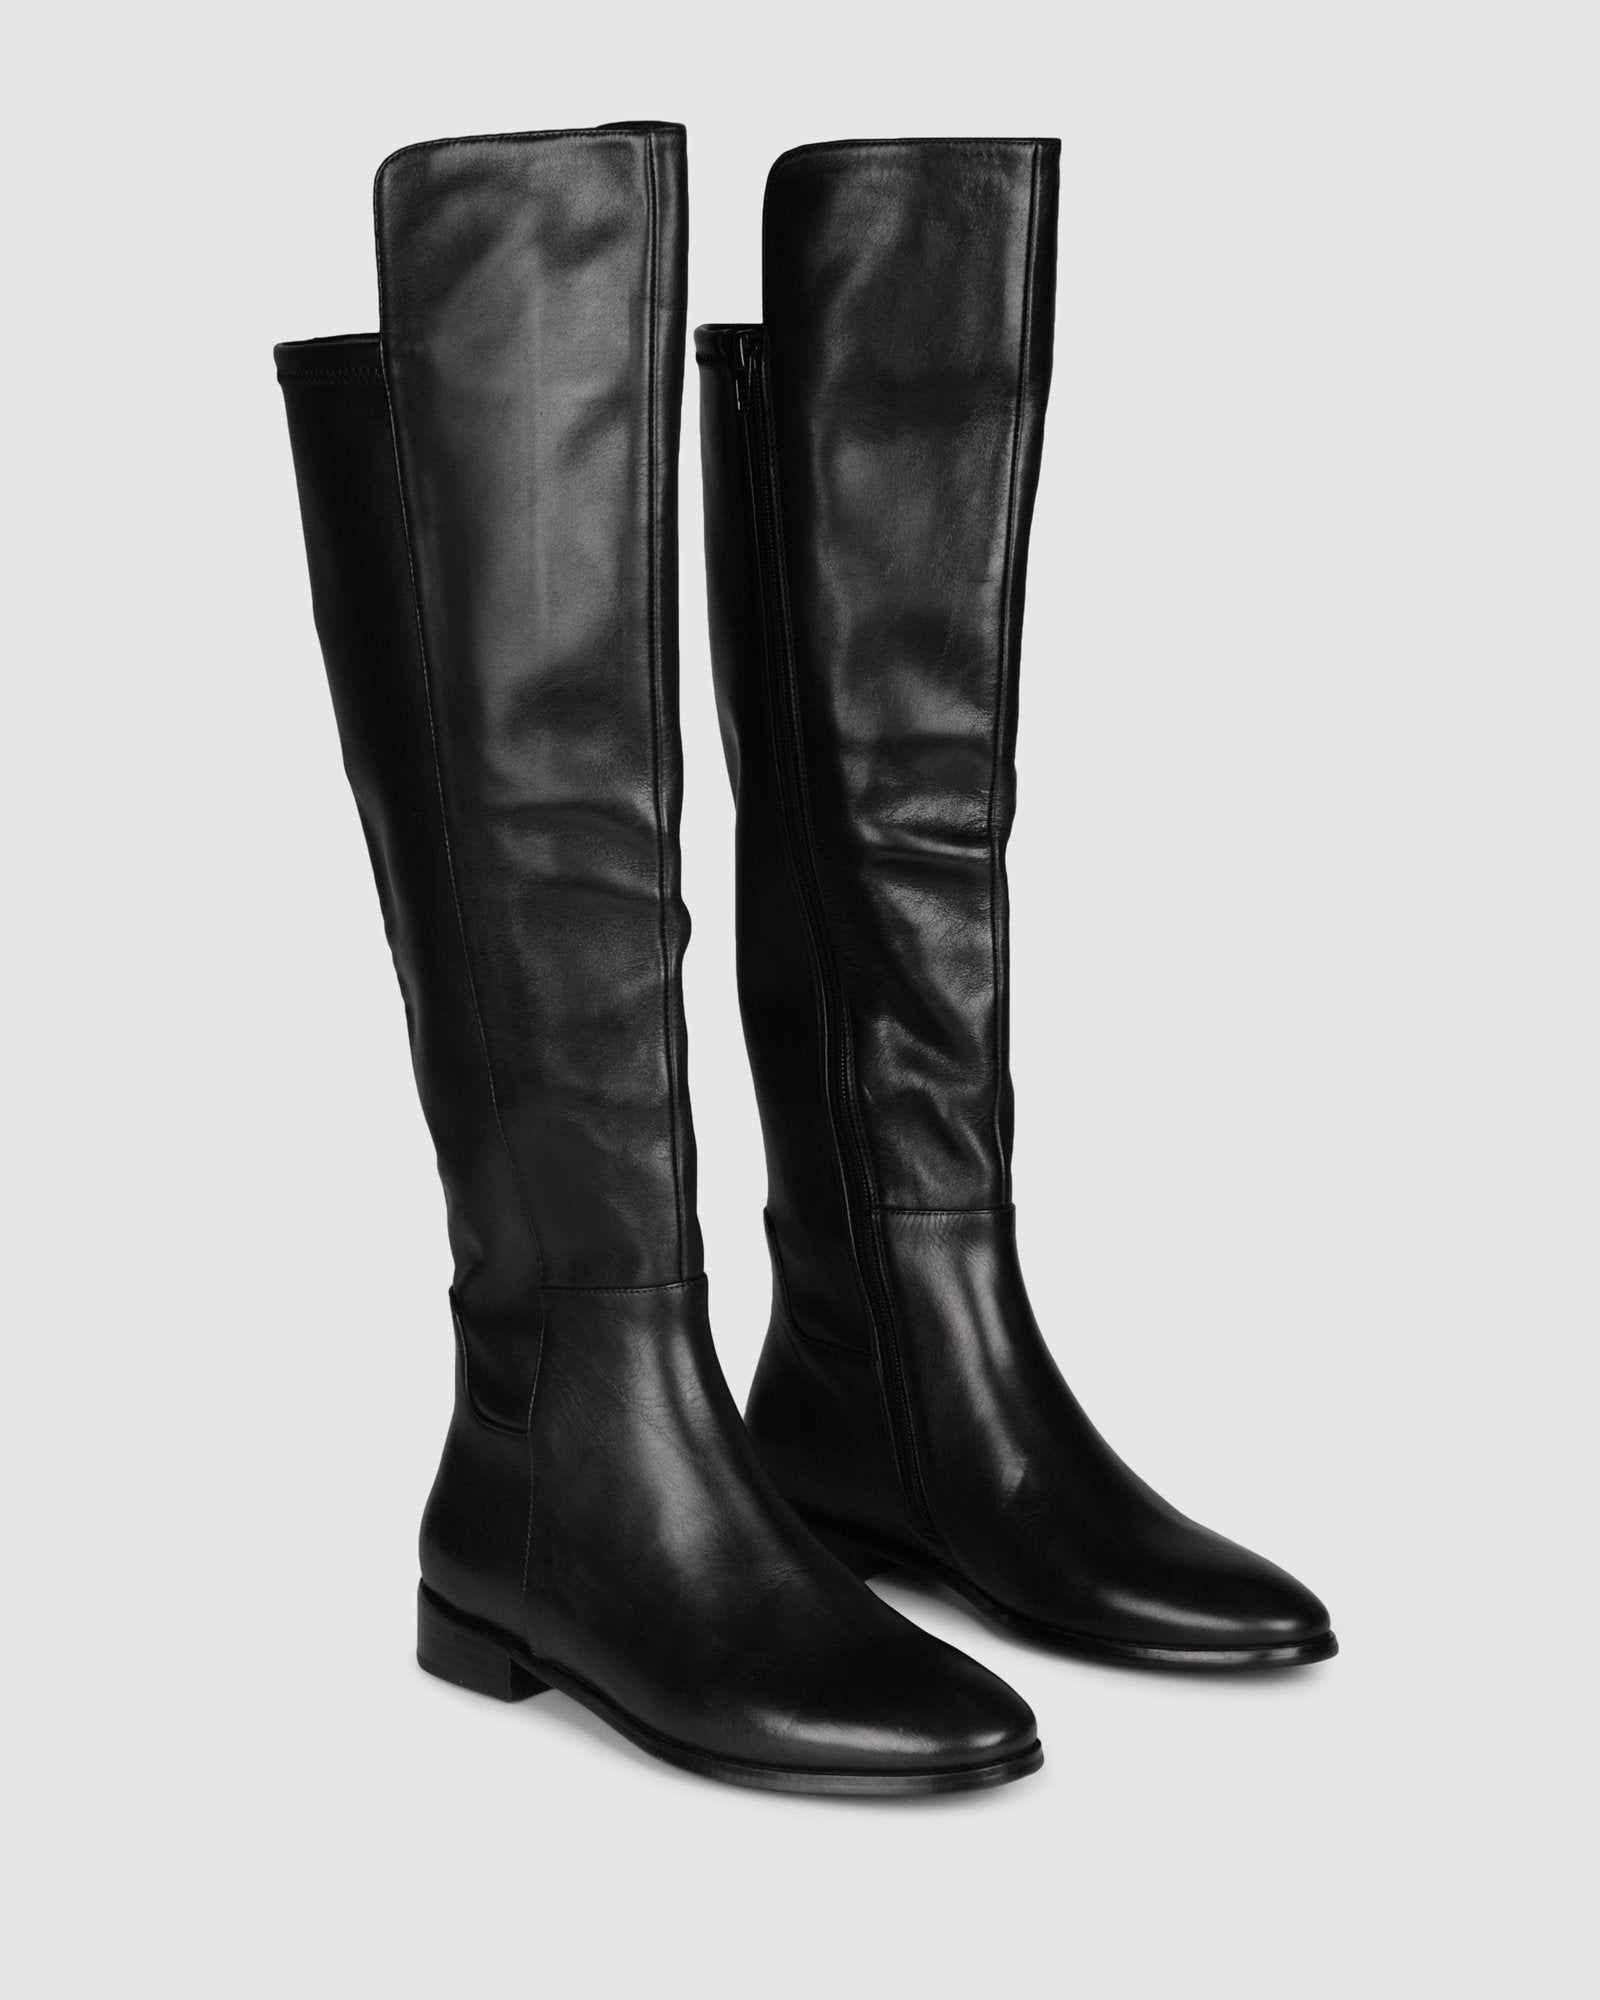 VENTURA FLAT OVER THE KNEE BOOTS BLACK LEATHER